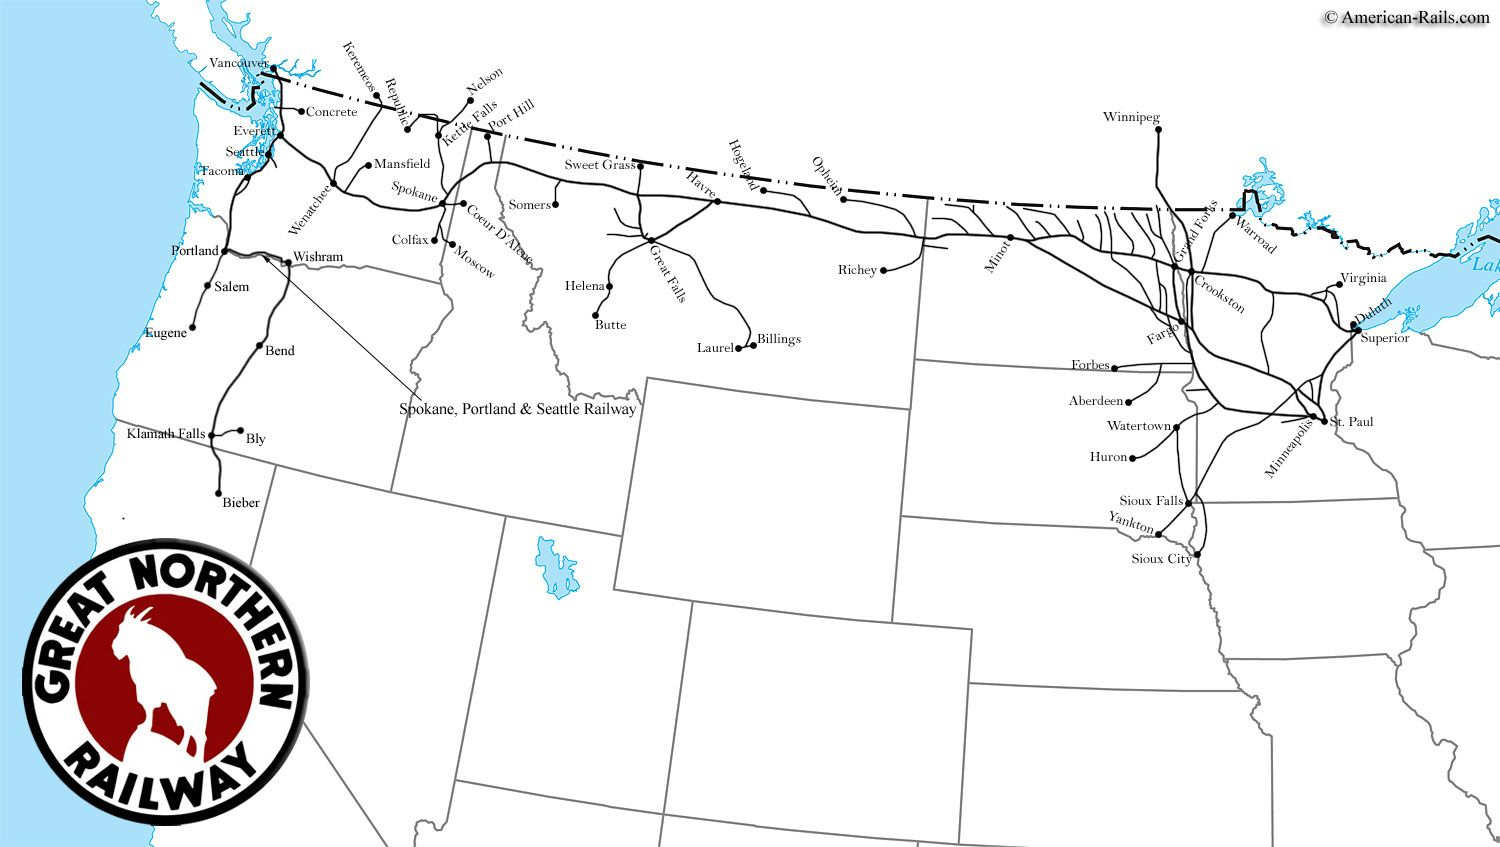 The Atchison Topeka And Santa Fe Railway Railroad Maps - Atchinson topeka and santa ferailroad on the us map